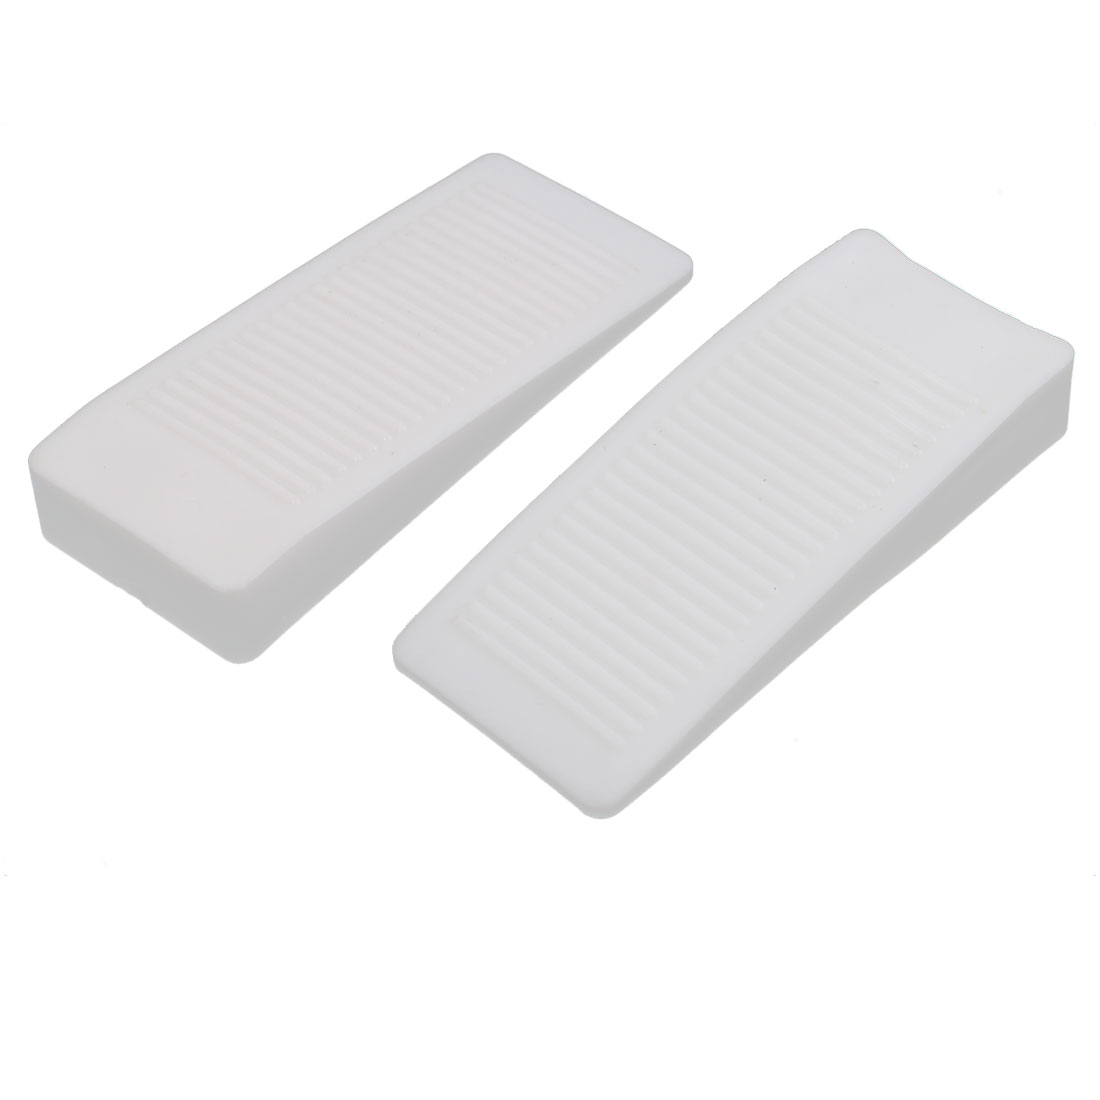 Home Office Safety Rubber Door Stop Stopper Doorstop Wedge Block White 2pcs